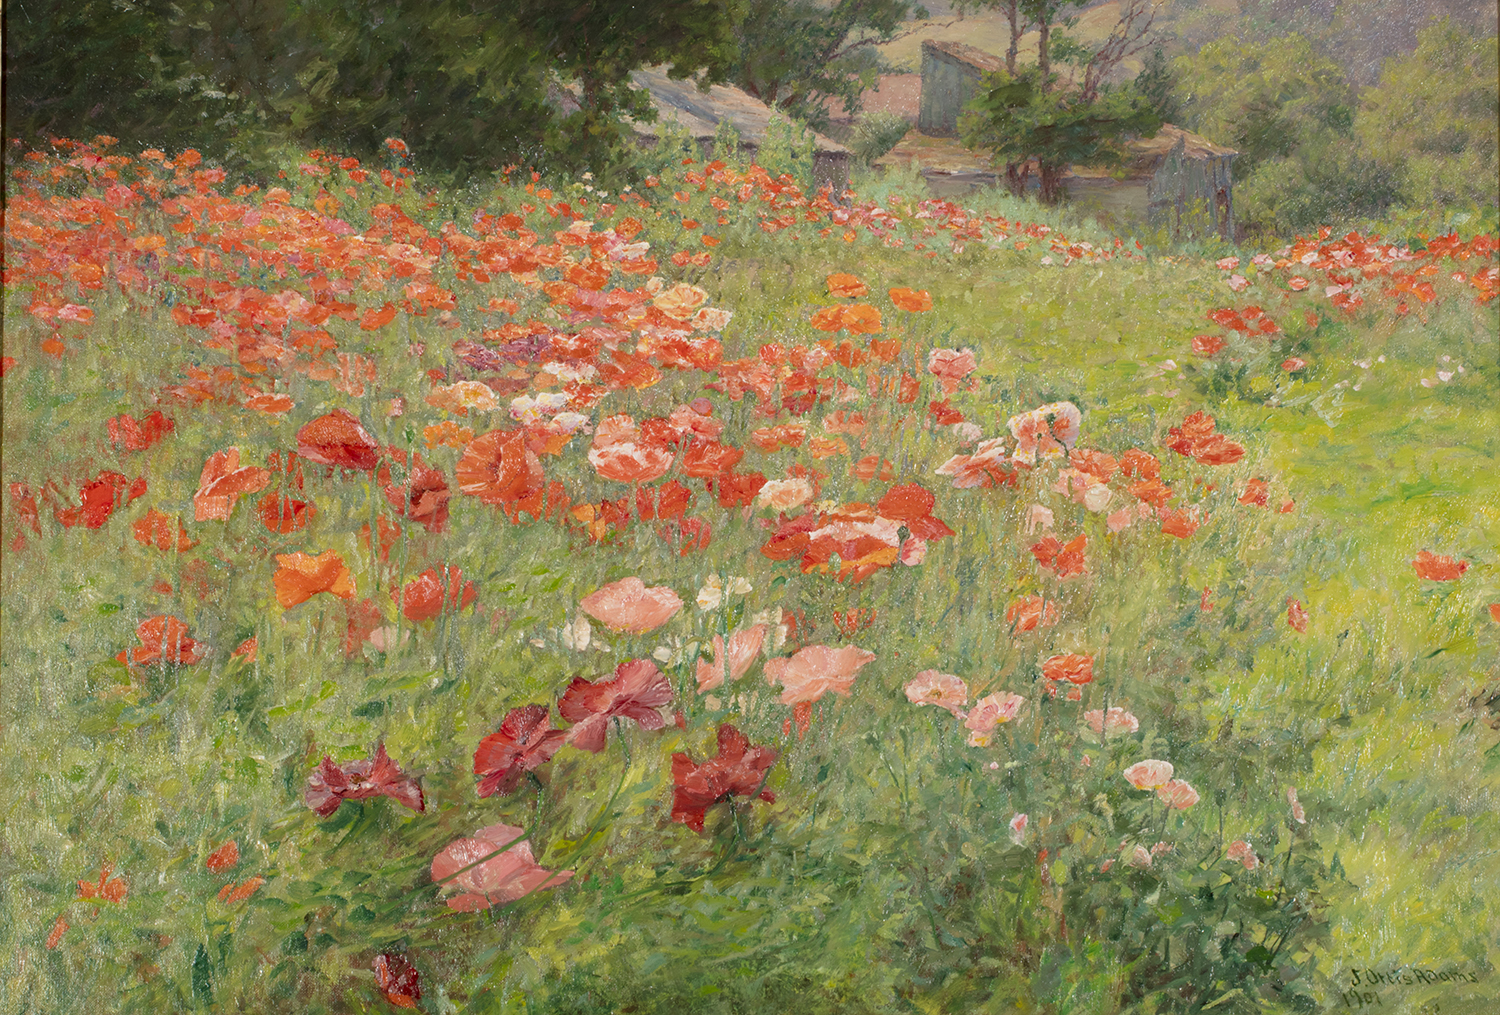 John Ottis Adams painting of poppies in a field